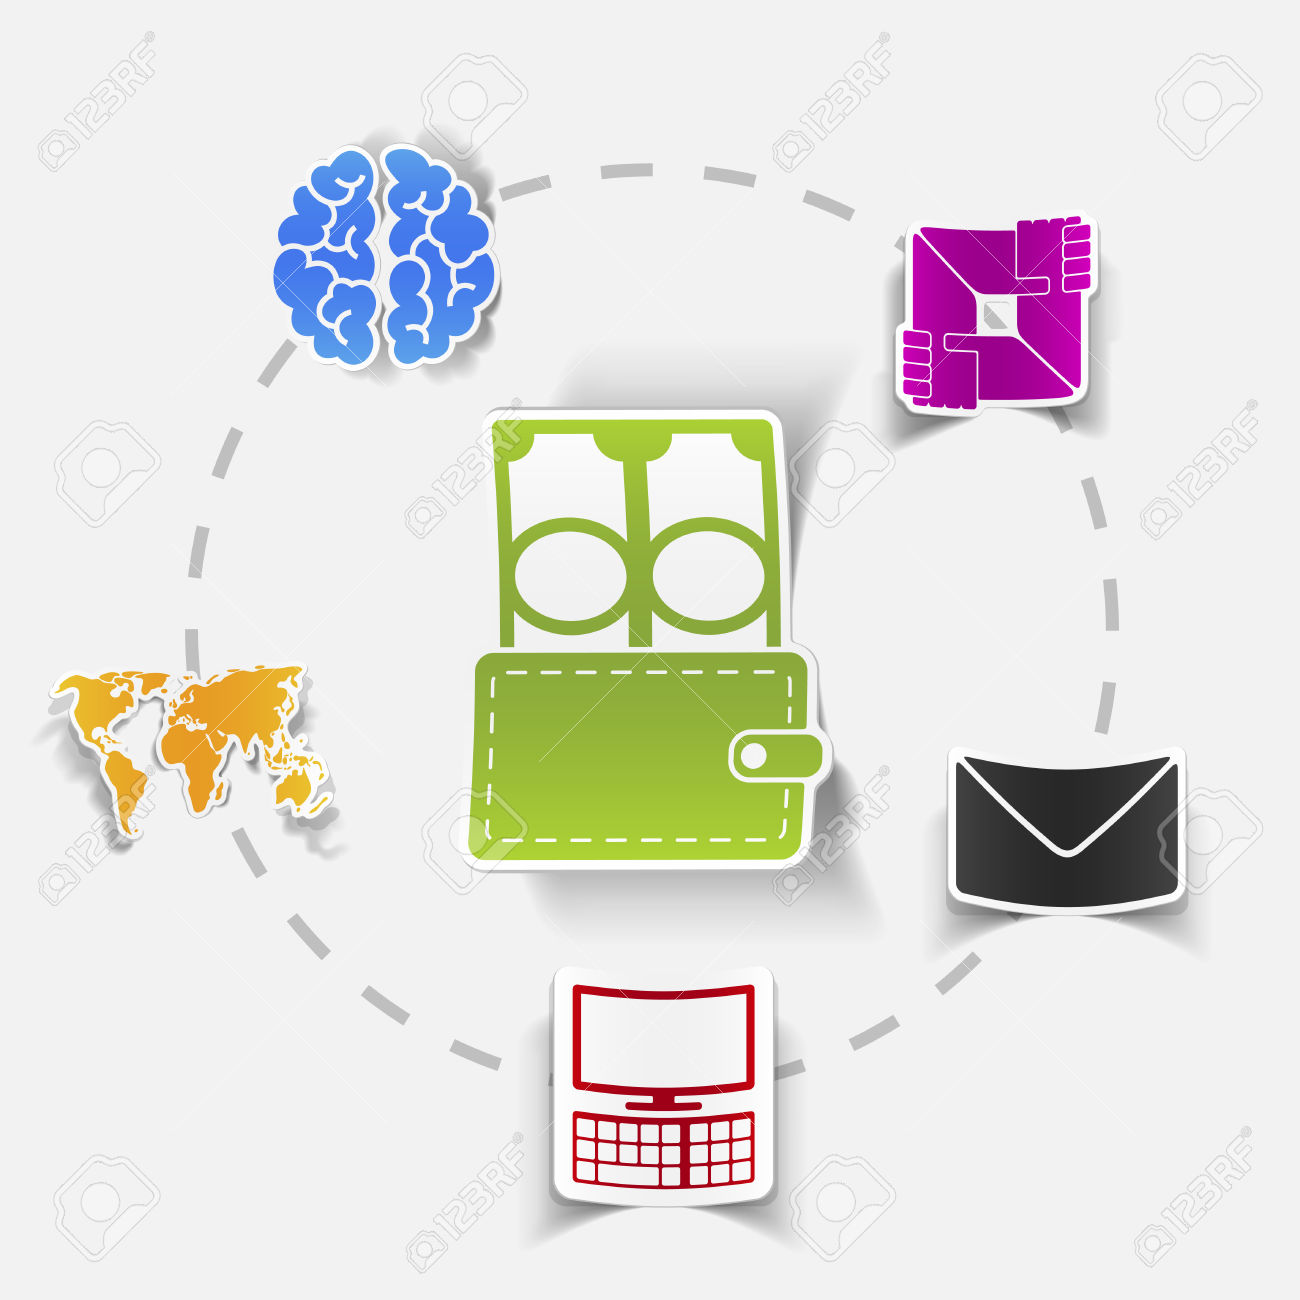 Social Concept: Envelope, Computer, Brain, Wallet, Money, Map.